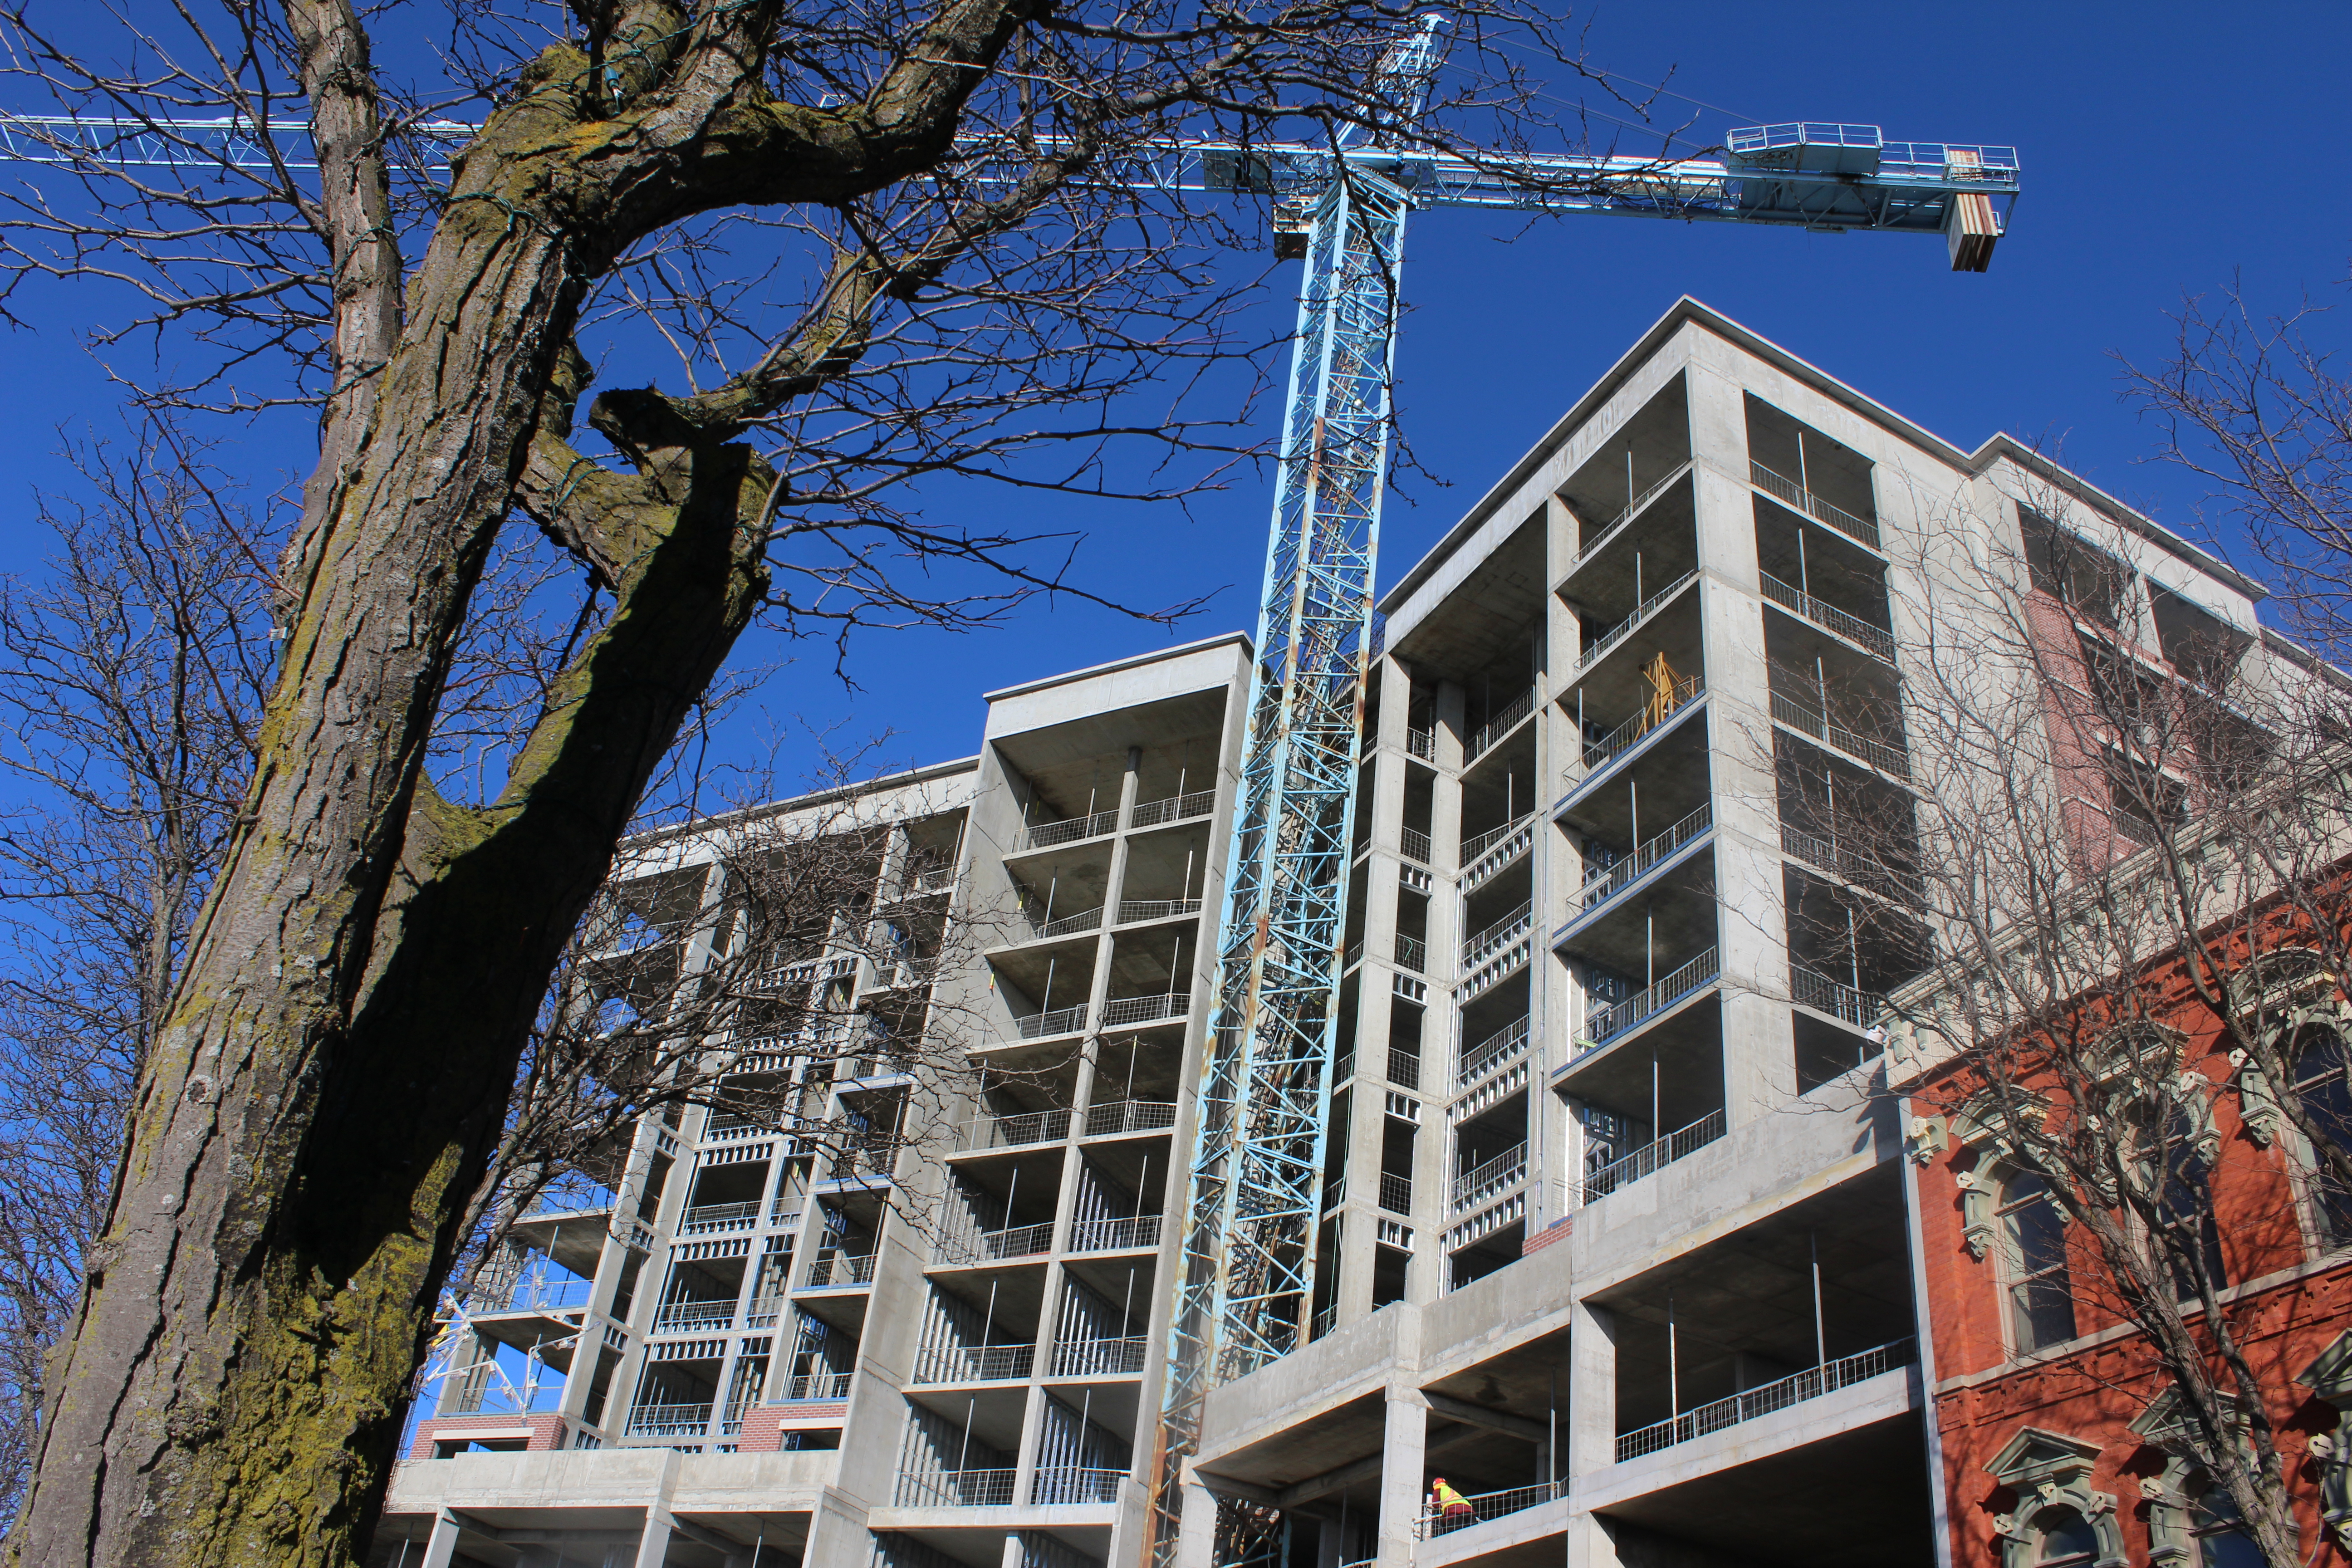 New condominiums under construction in downtown Chatham seen on February 3, 2016. (Photo by Ricardo Veneza)